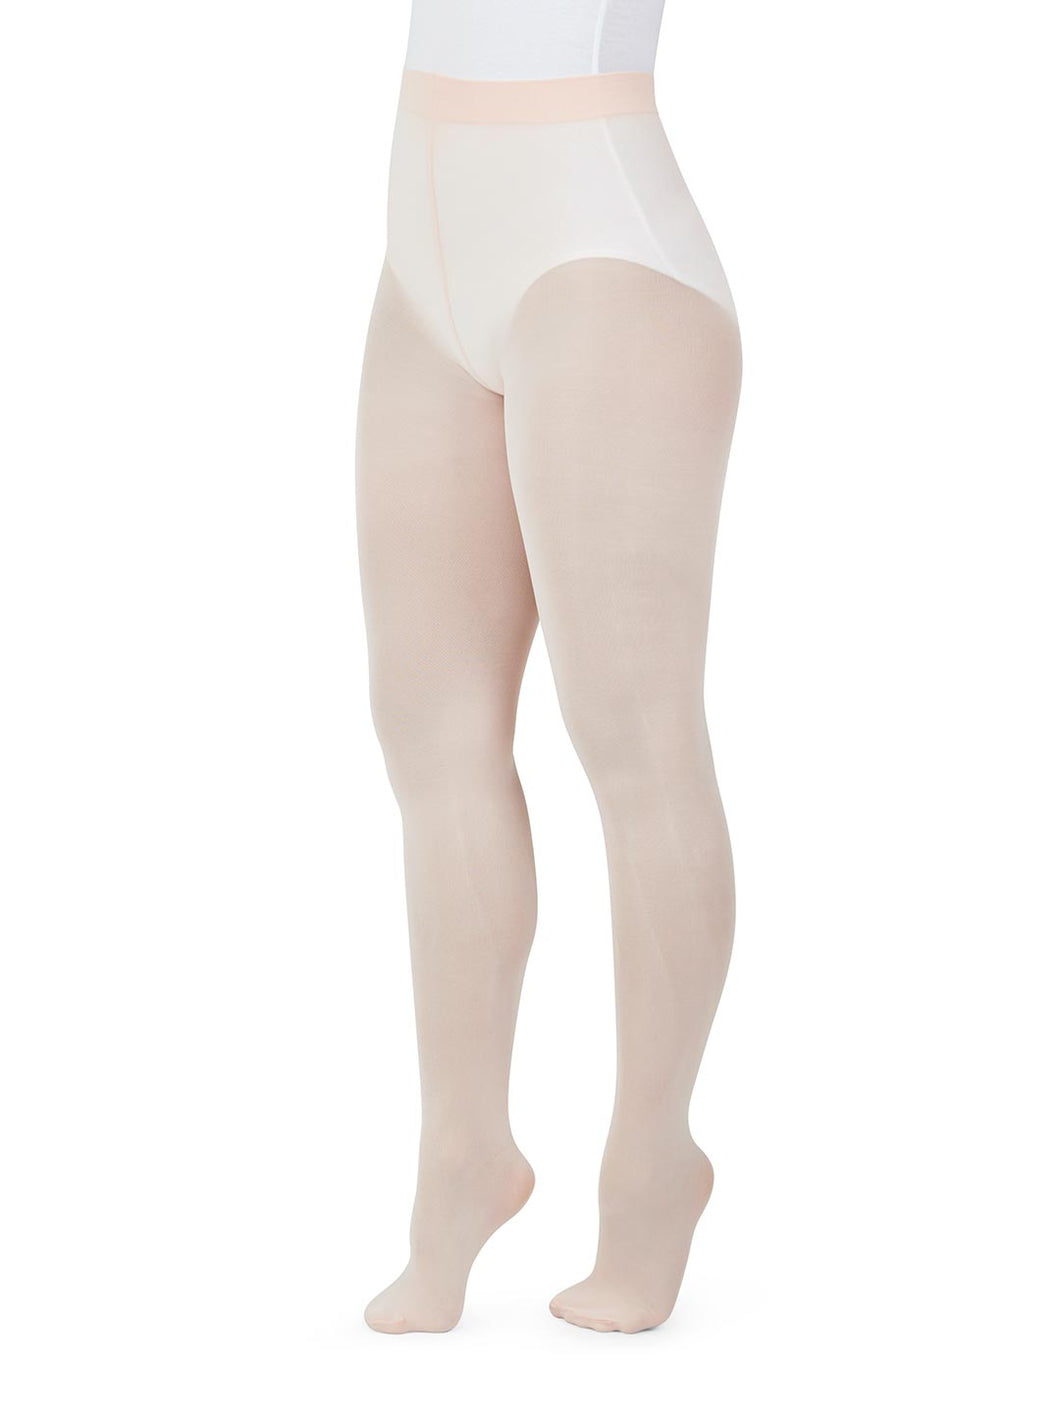 Capezio Lucky Bamboo  Transition Child Tights; Child Small Size; #N25C